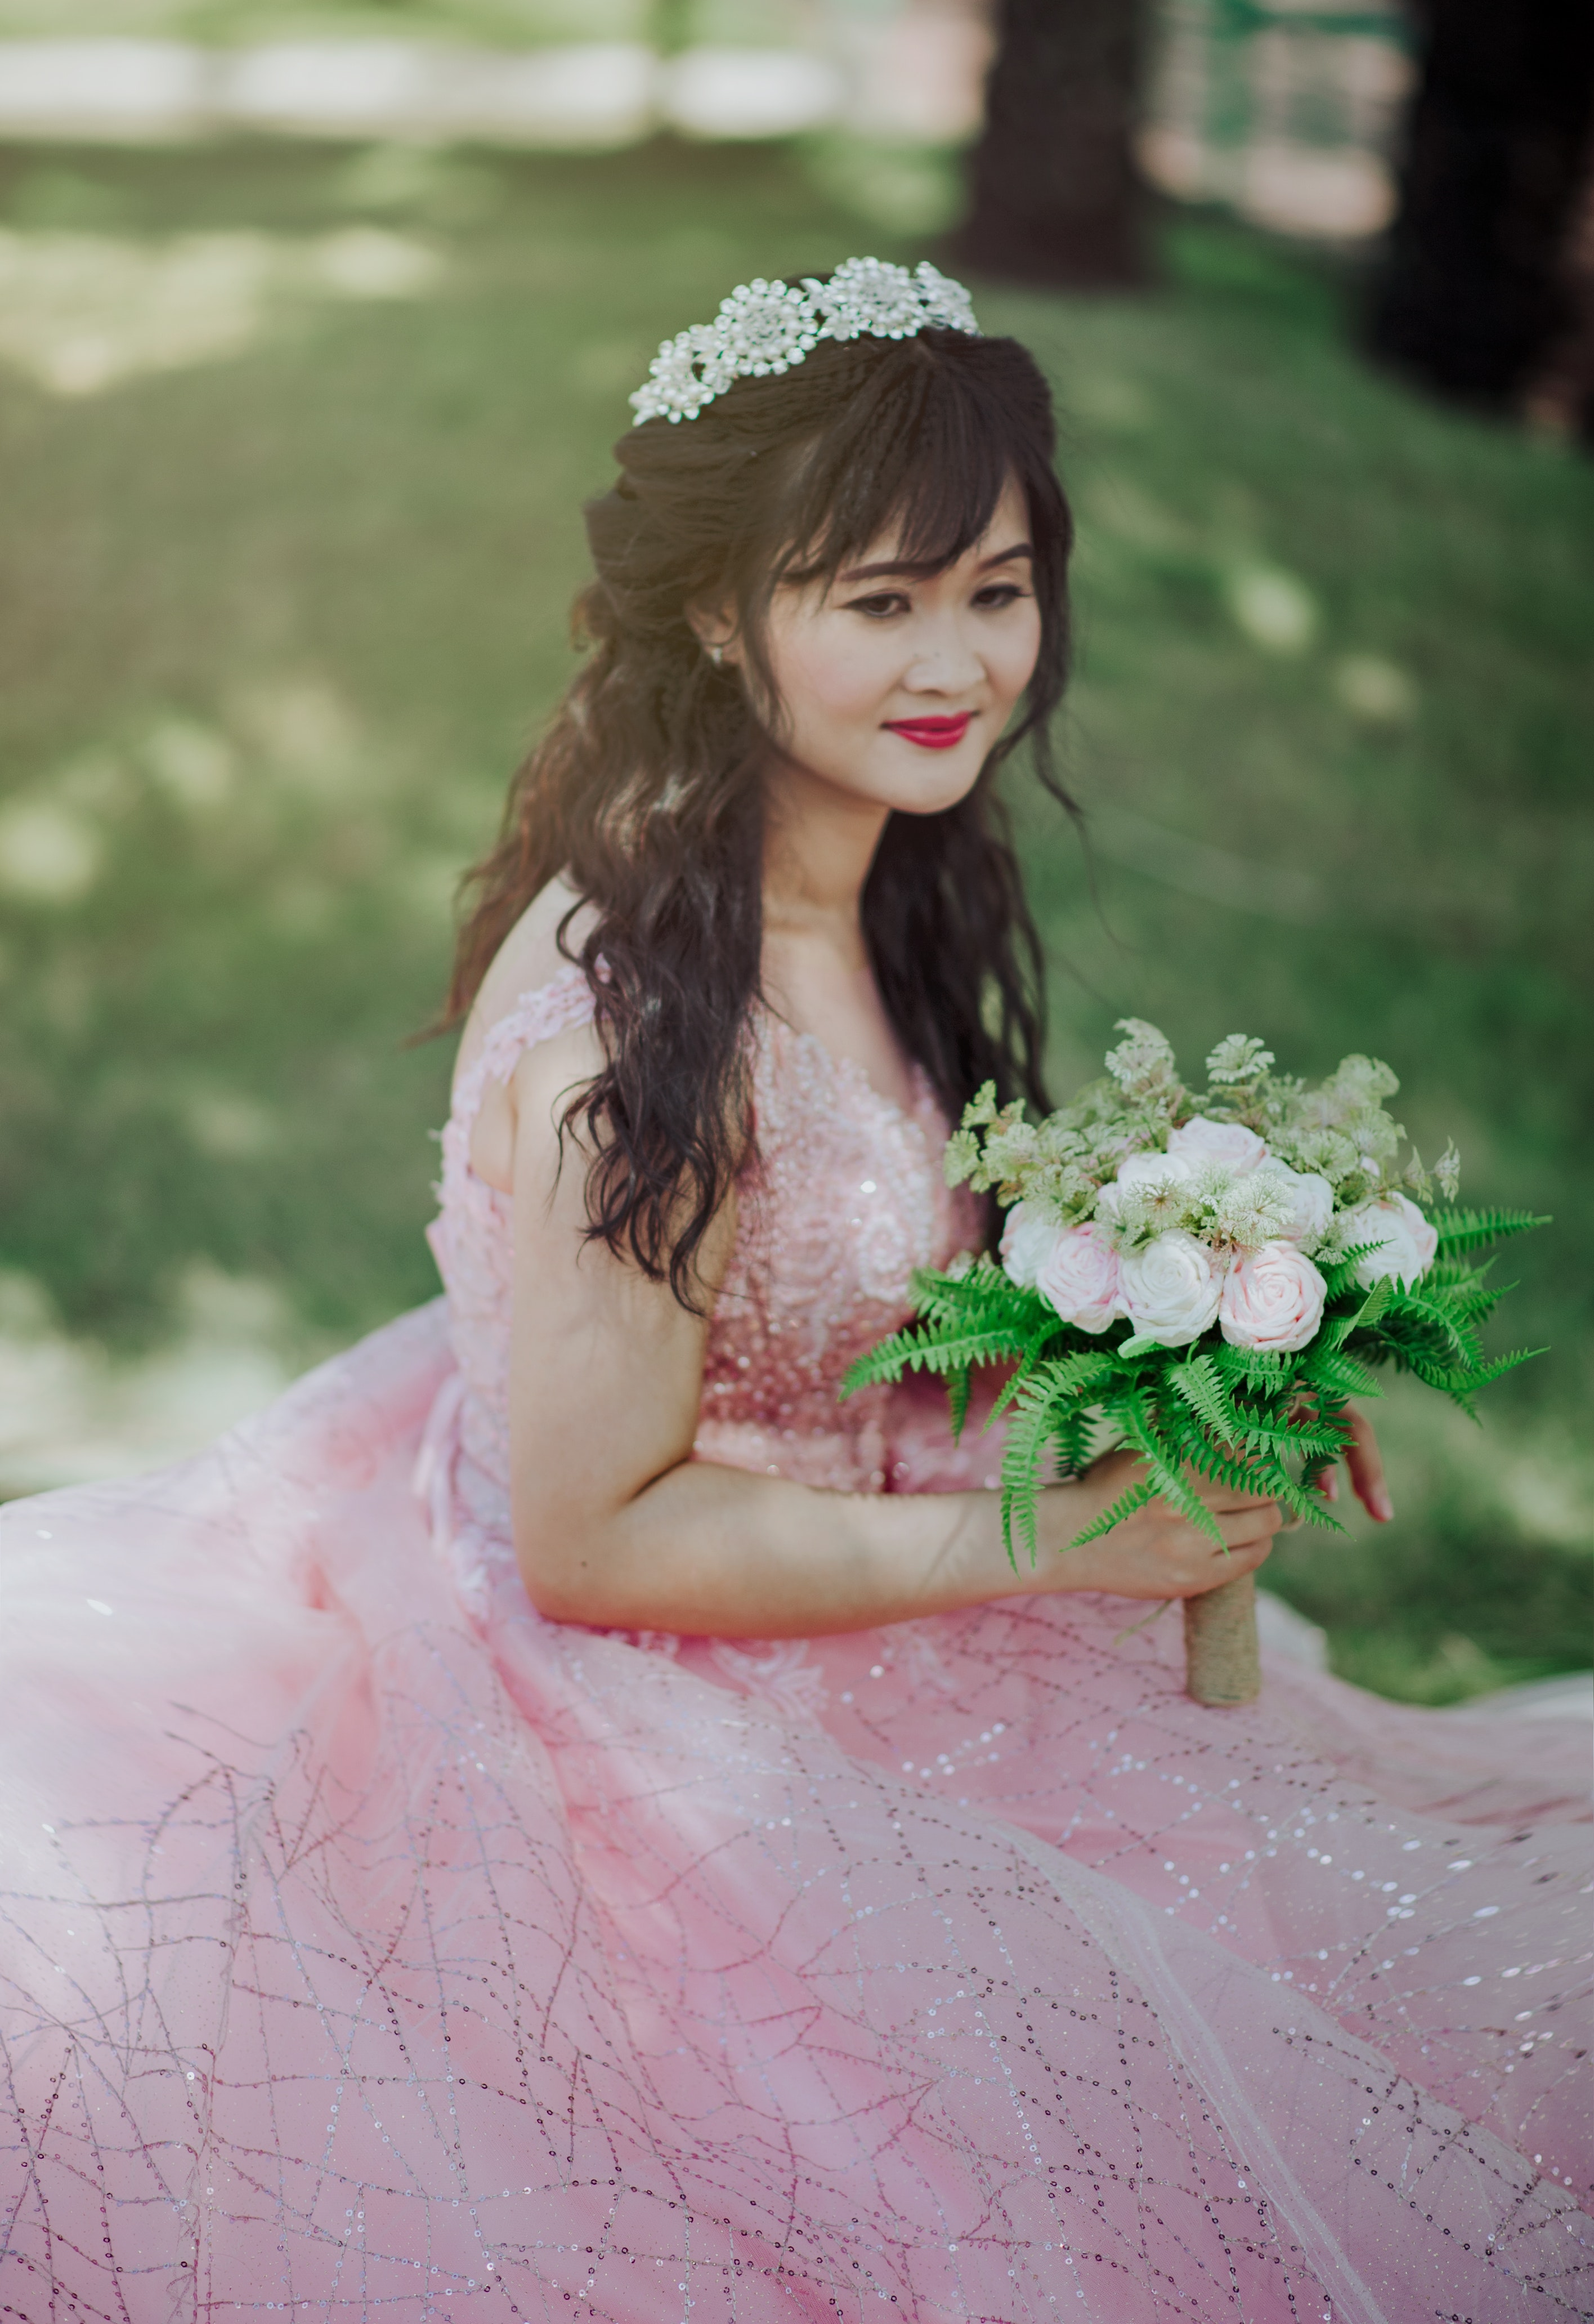 Women's pink gown photo